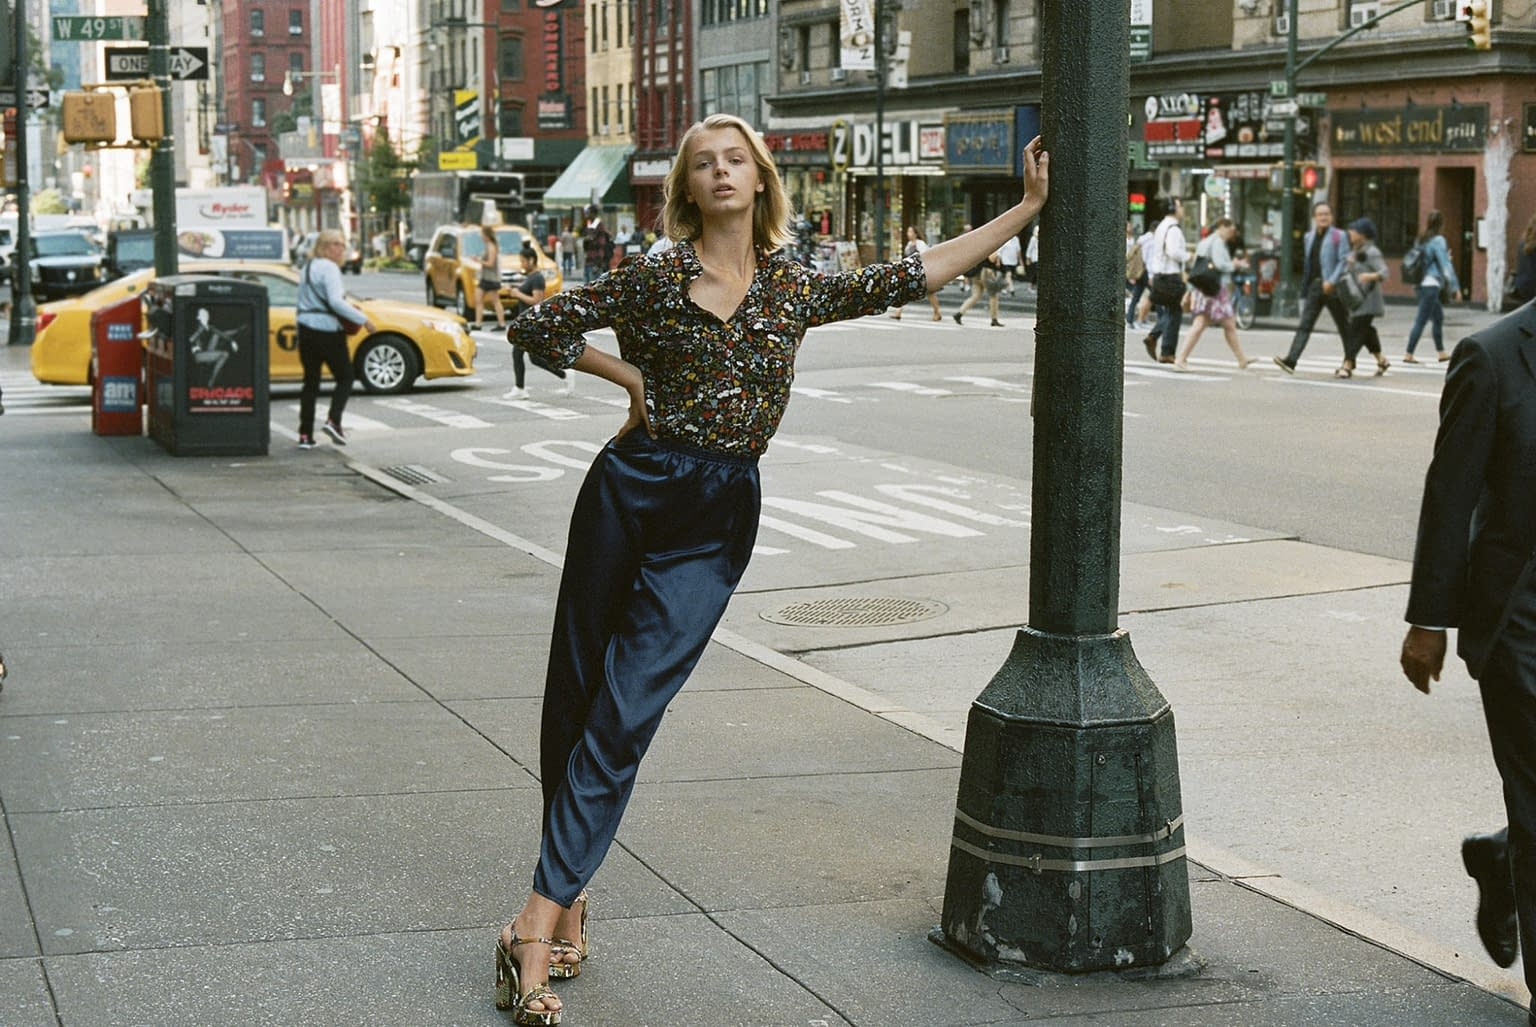 KYLIE NEW YORK BY ENRIC GALCERAN - PHOTO 21